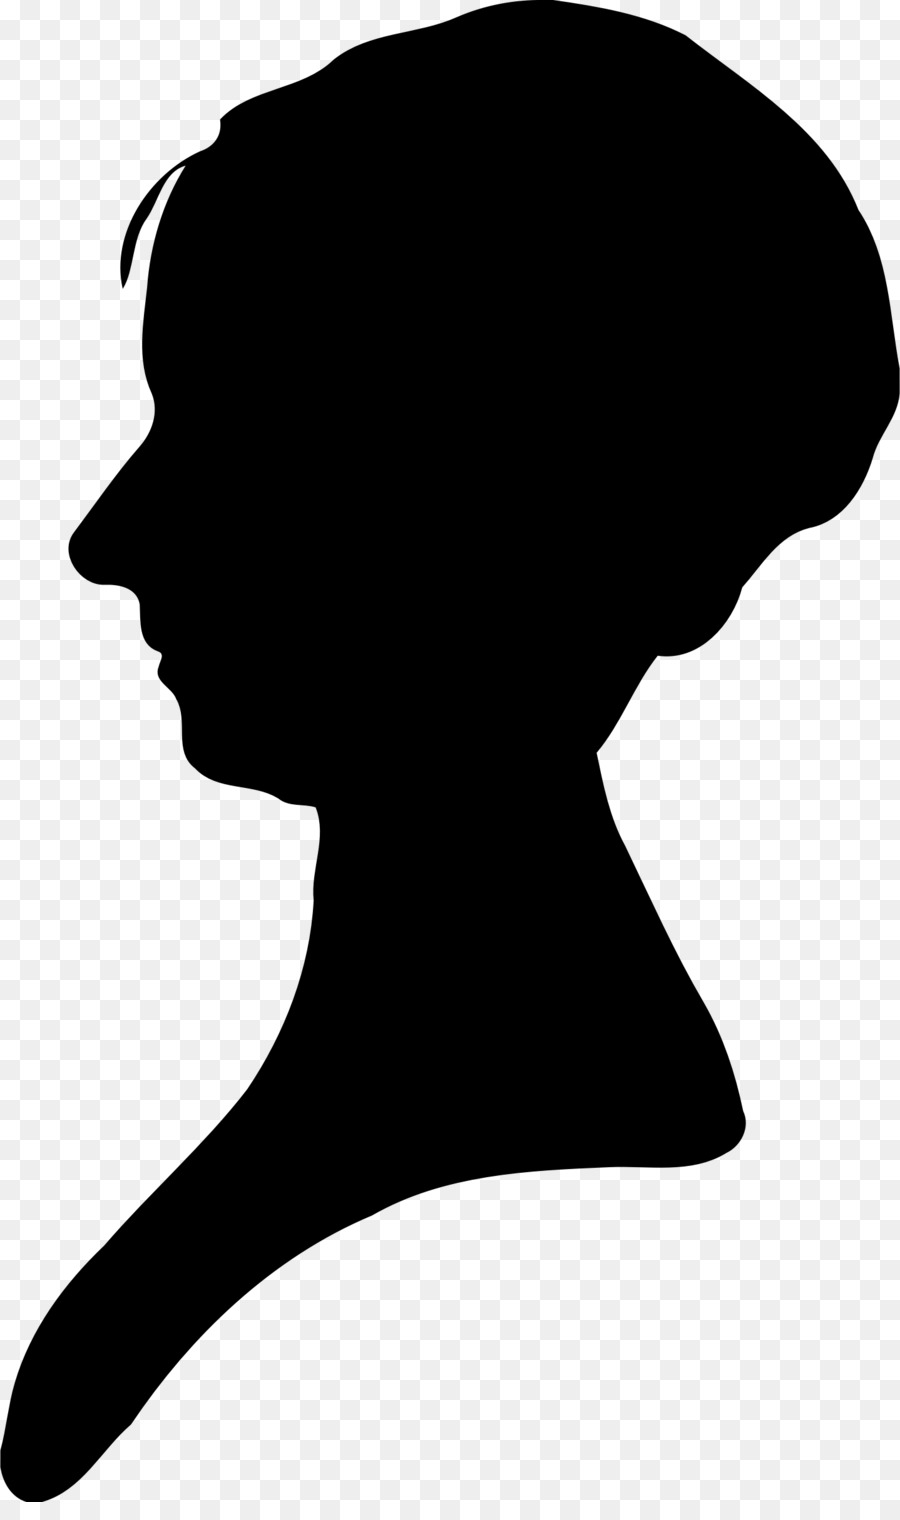 900x1520 Silhouette Photography Clip Art